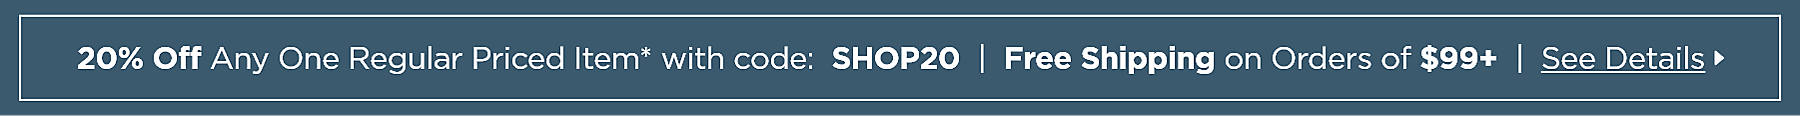 20% Off Any One Regular Priced Item with code: SHOP20 Online Only PLUS Free Shipping on Orders Over $99 See Details